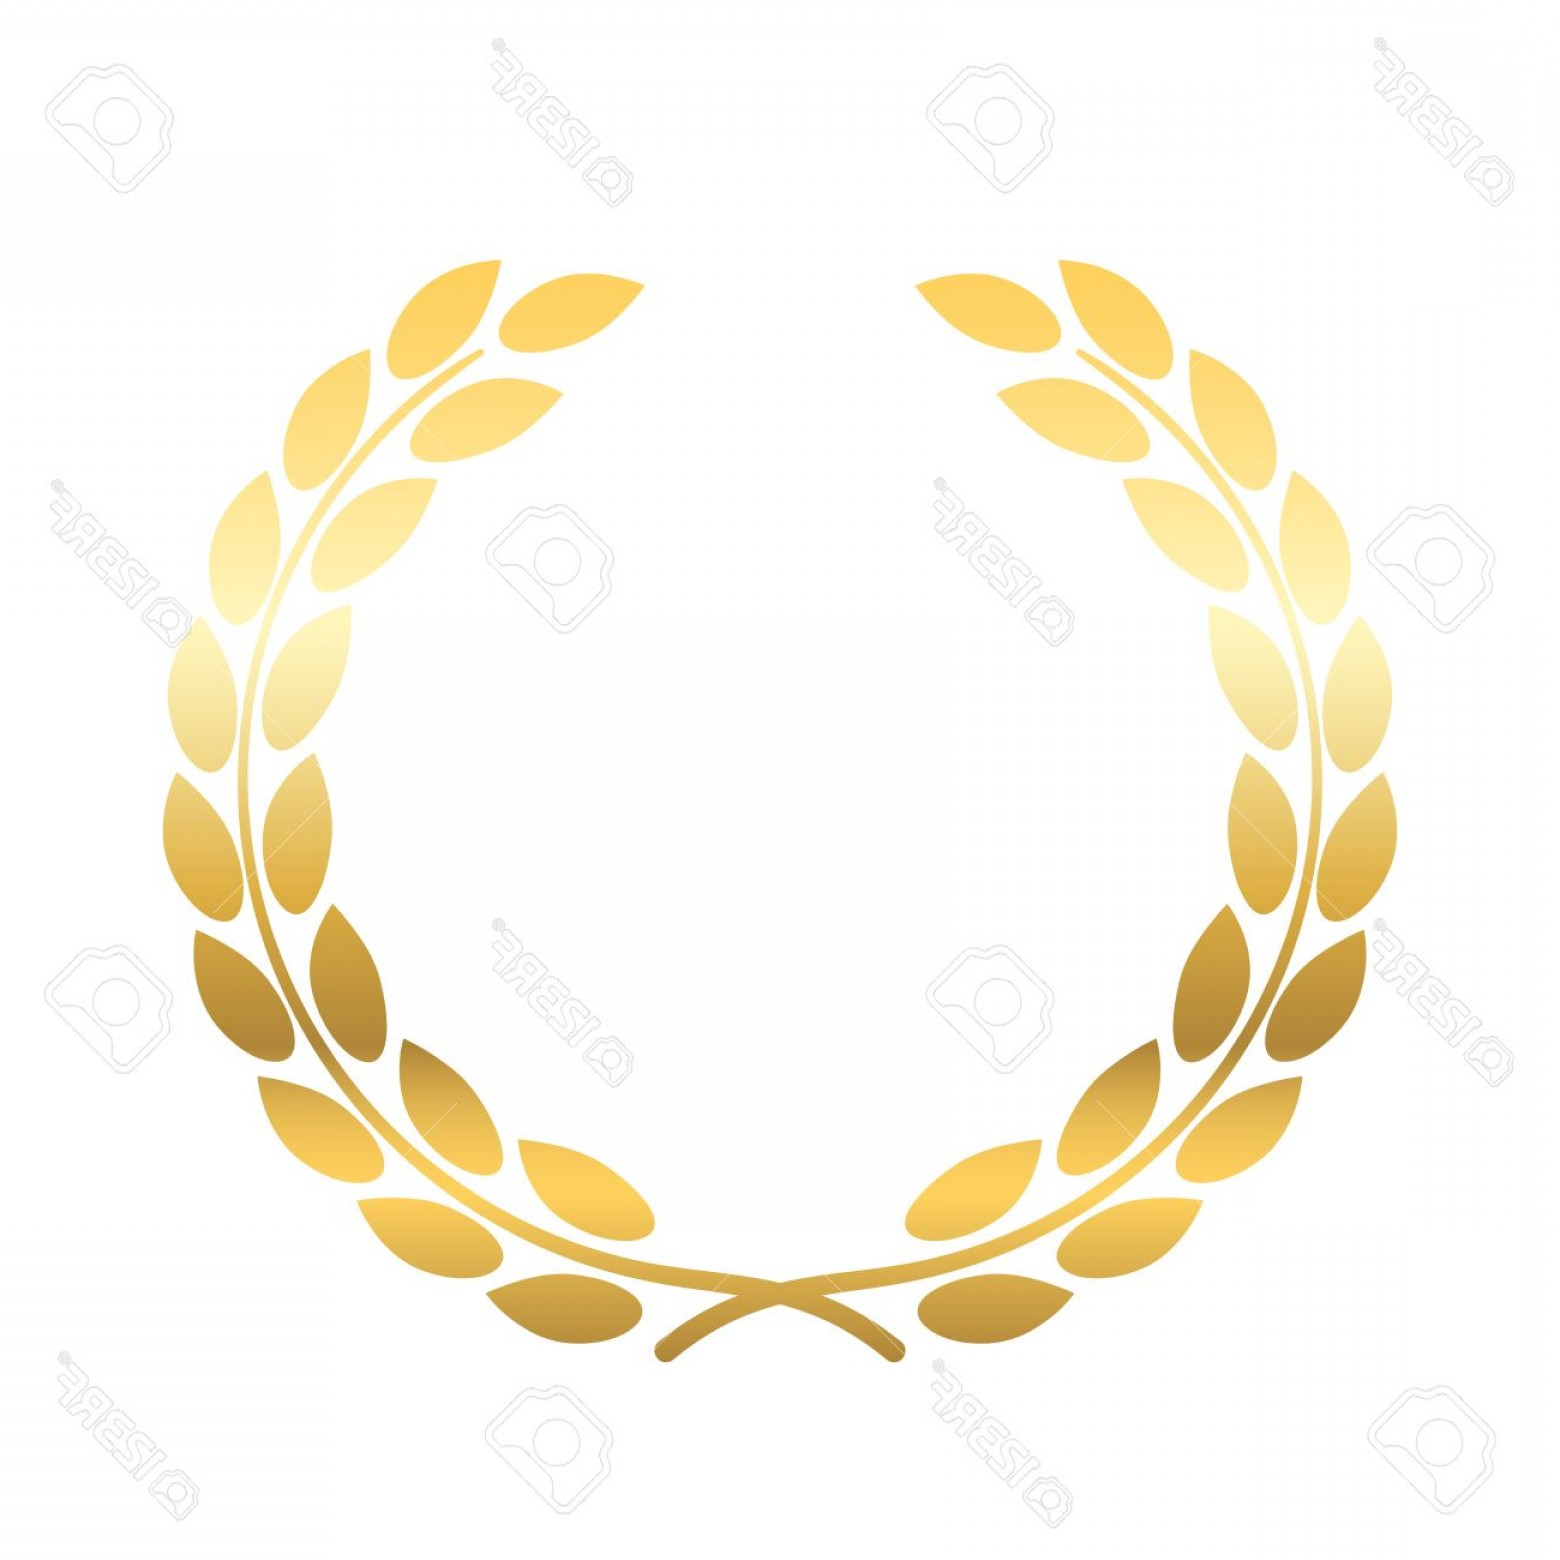 Wheat Wreath Vector Art: Photostock Vector Gold Laurel Or Wheat Wreath Icon Symbol Of Victory Achievement And Grain Natural Food Golden Design